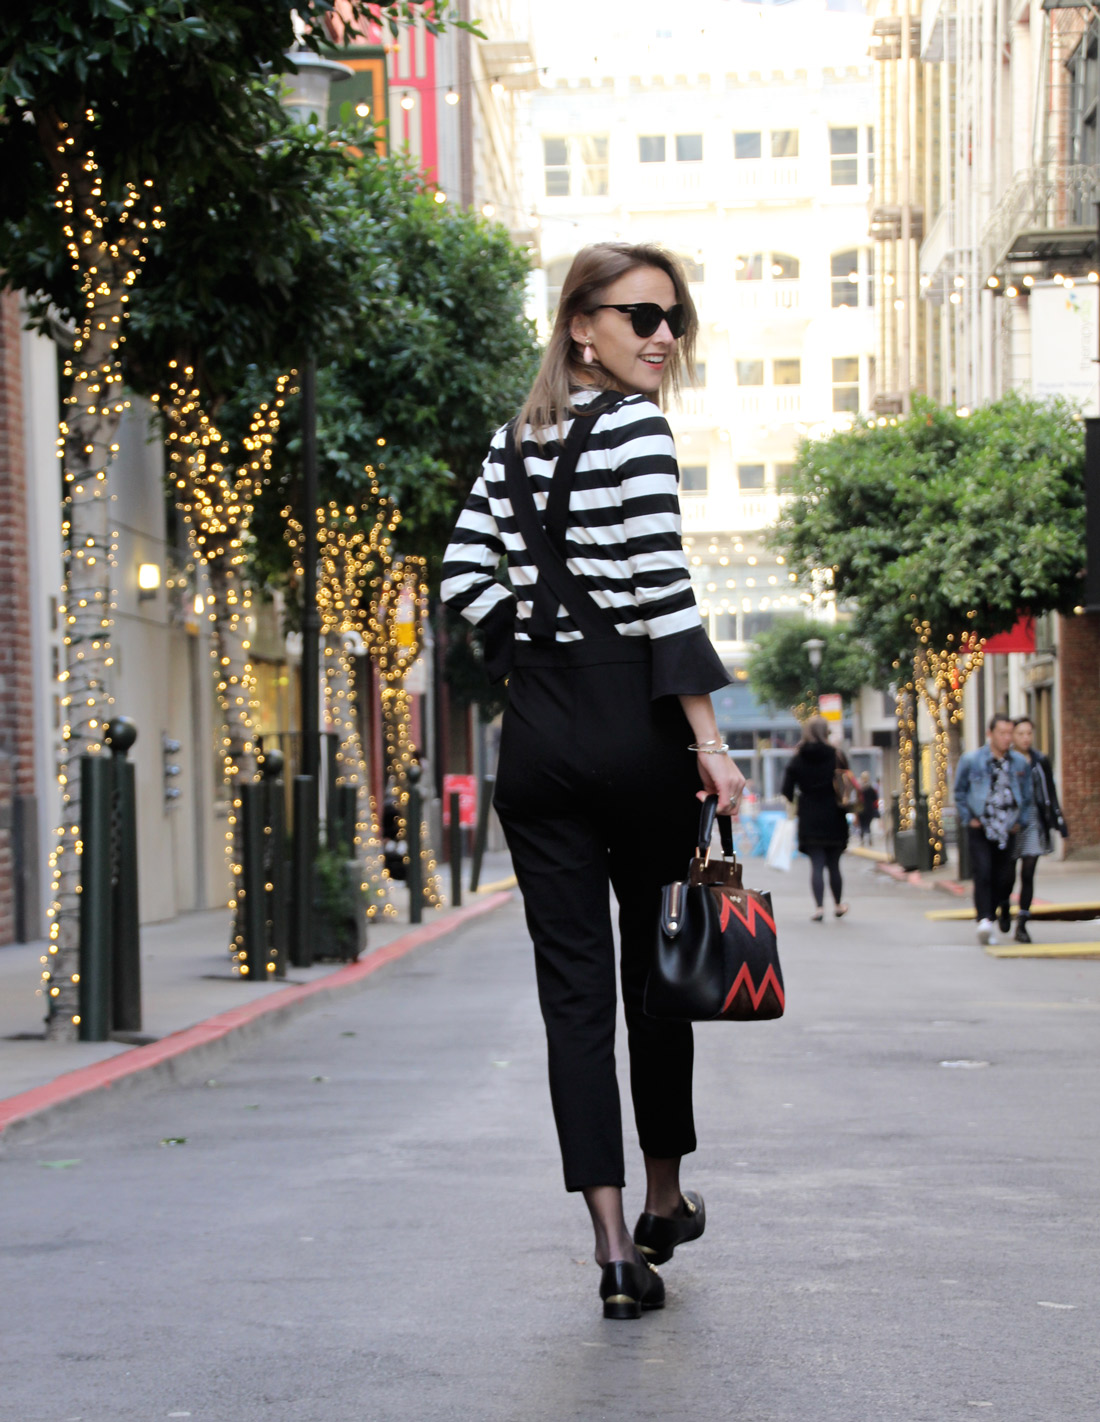 bag-at-you-fashion-blog-reasons-to-love-san-francisco